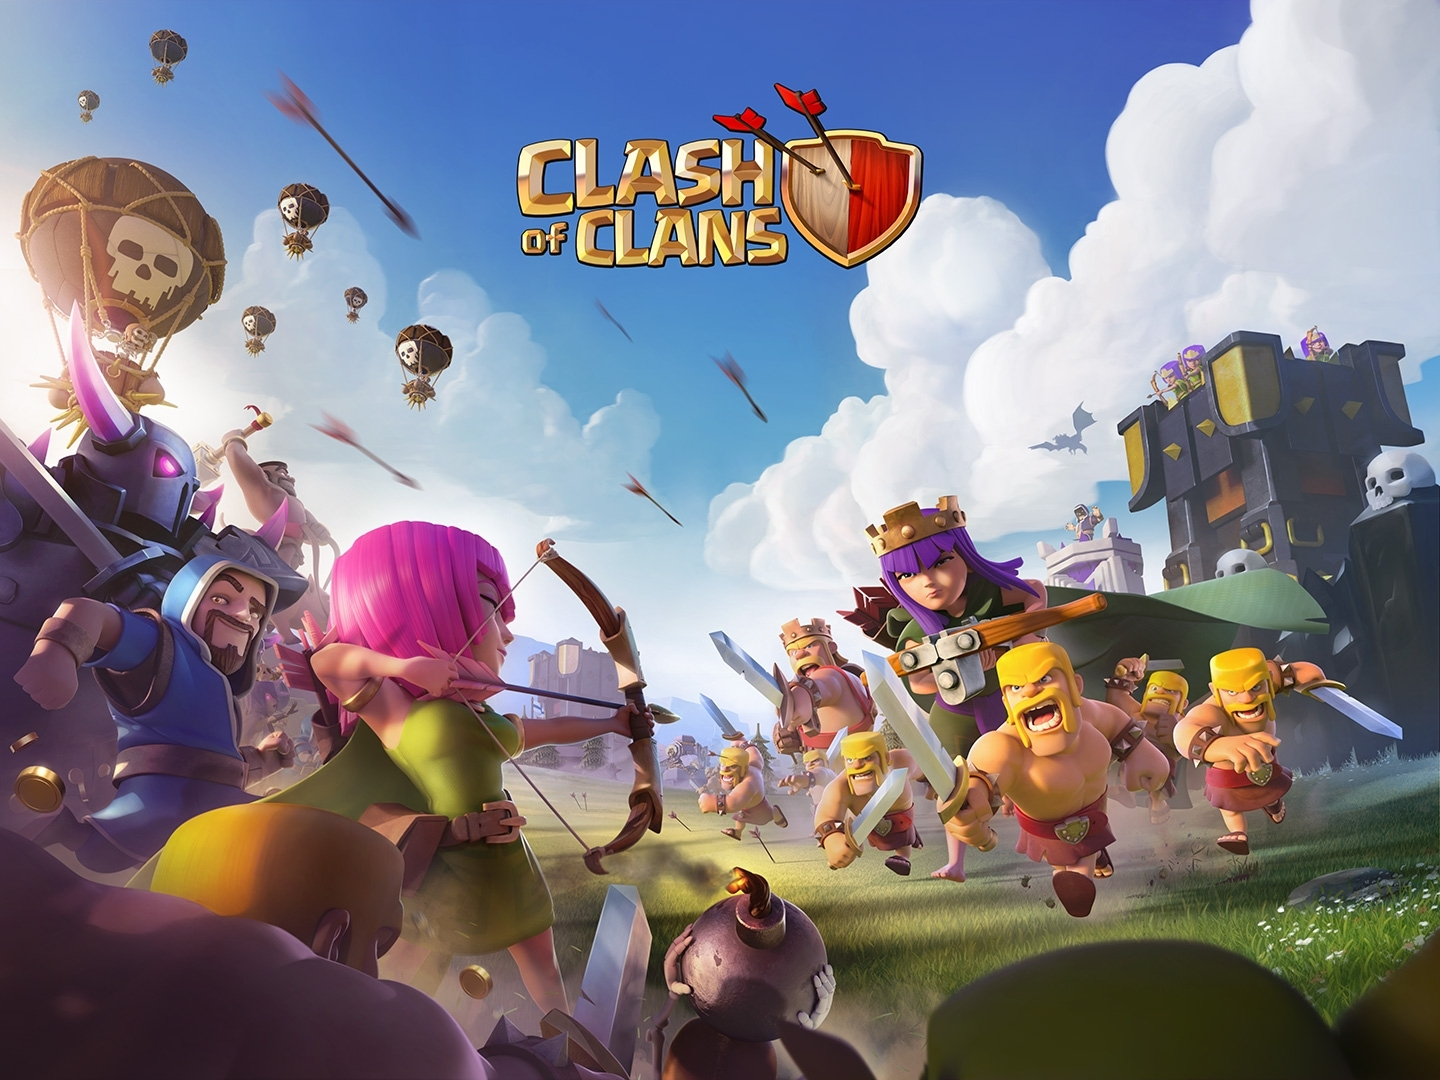 interdiction du supercell clash of clans en iran - echotechno.fr